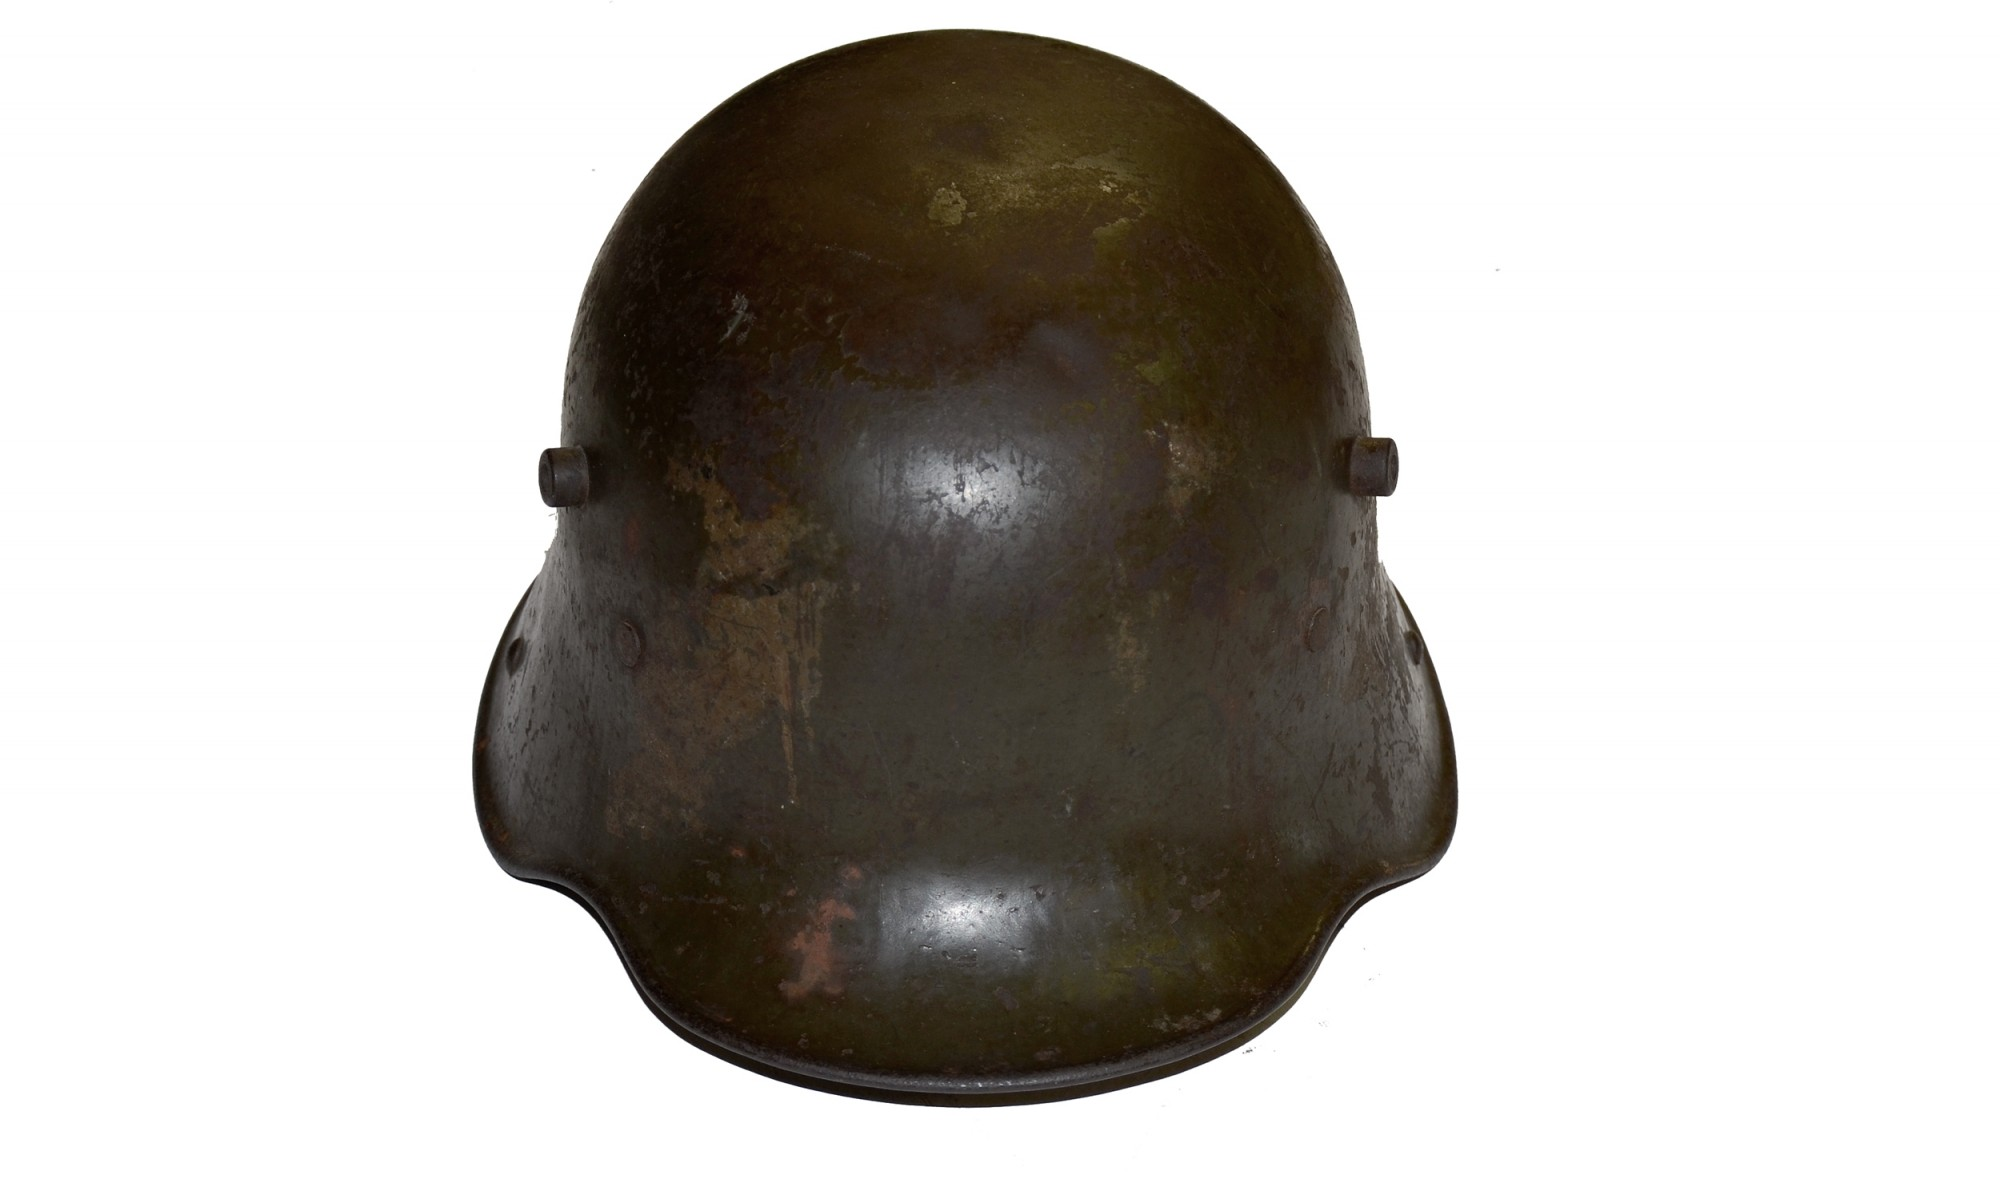 MODEL 1916 WORLD WAR ONE GERMAN HELMET